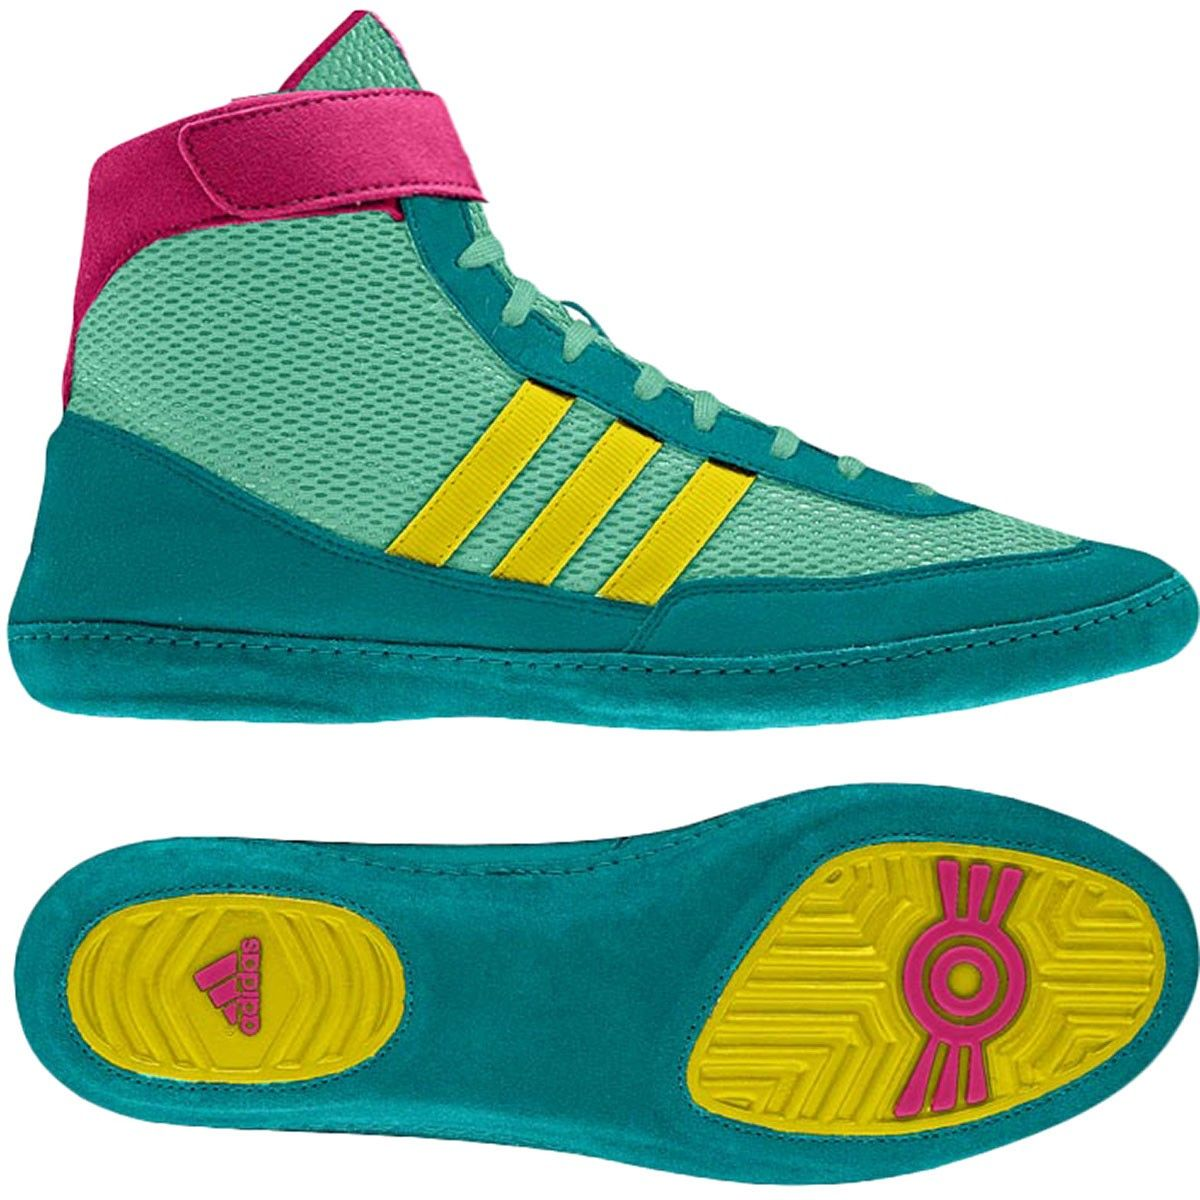 outlet store 8ba29 ab93c adidas Combat Speed 4 Wrestling Shoes - Blast EmeraldVivid Yellow Blast  Pink- size 7